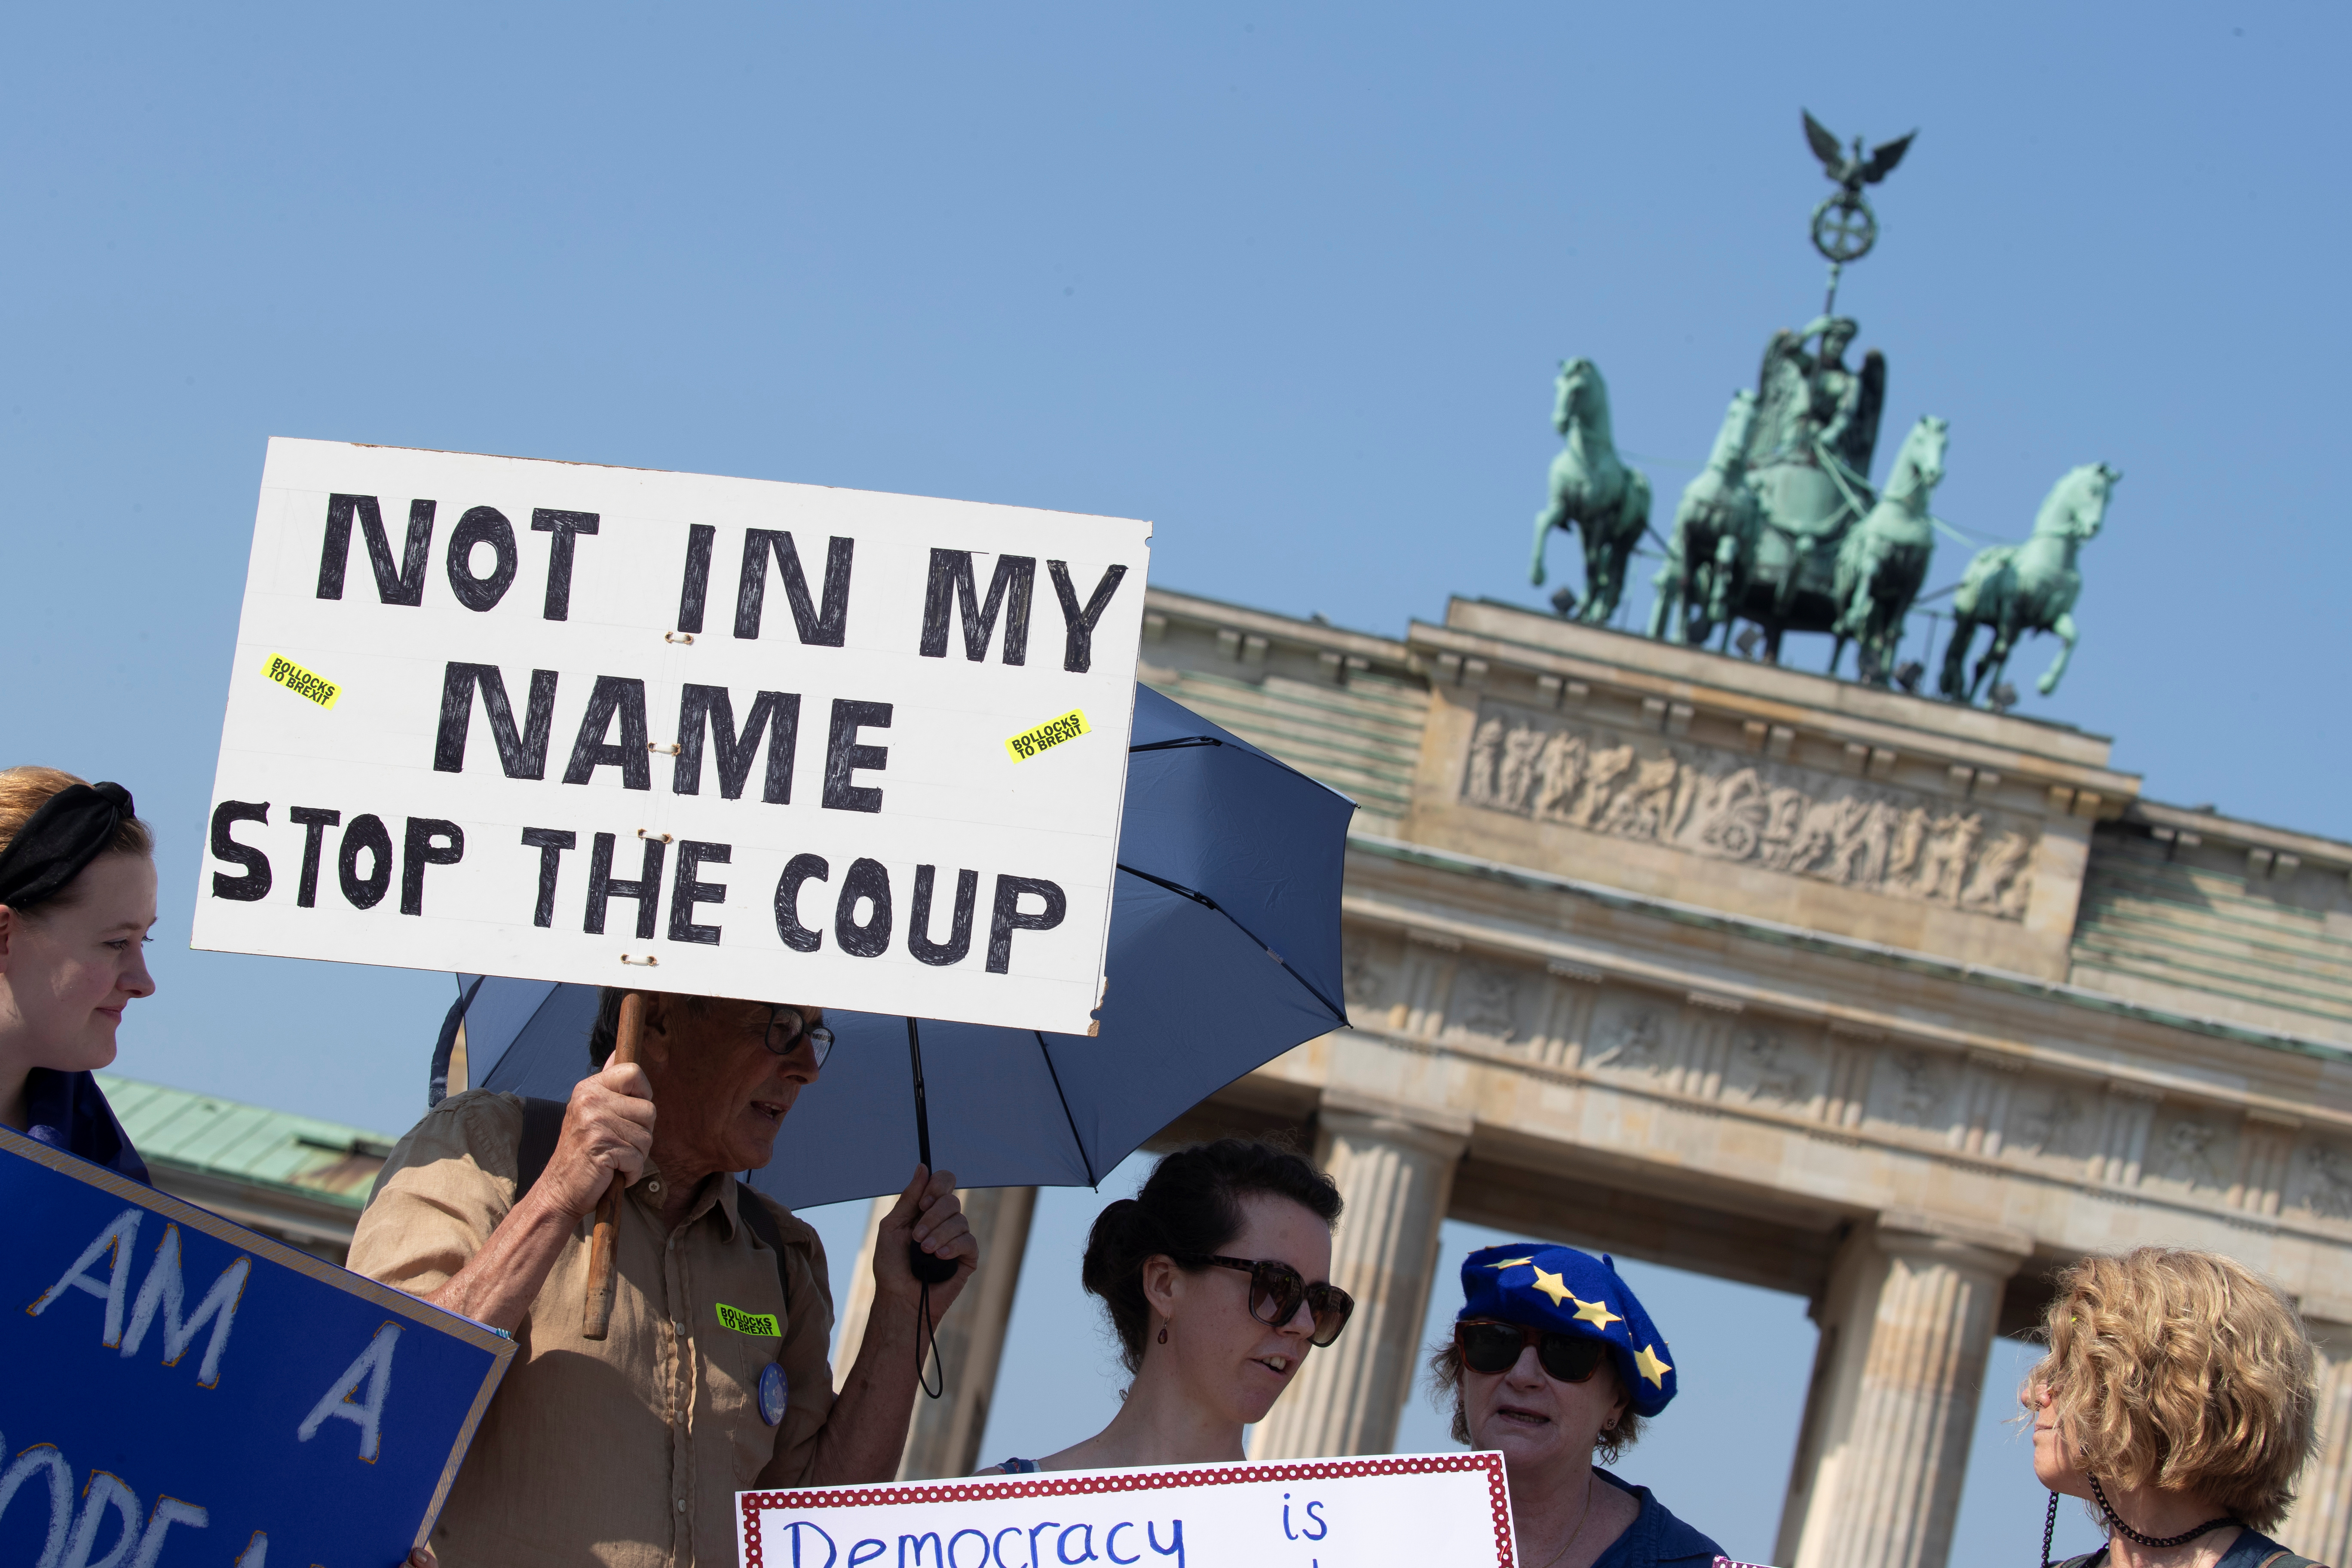 Activists protest against Brexit and the British Parliament suspension in front of Brandenburg Gate in Berlin, Germany August 31, 2019. REUTERS/Axel Schmidt